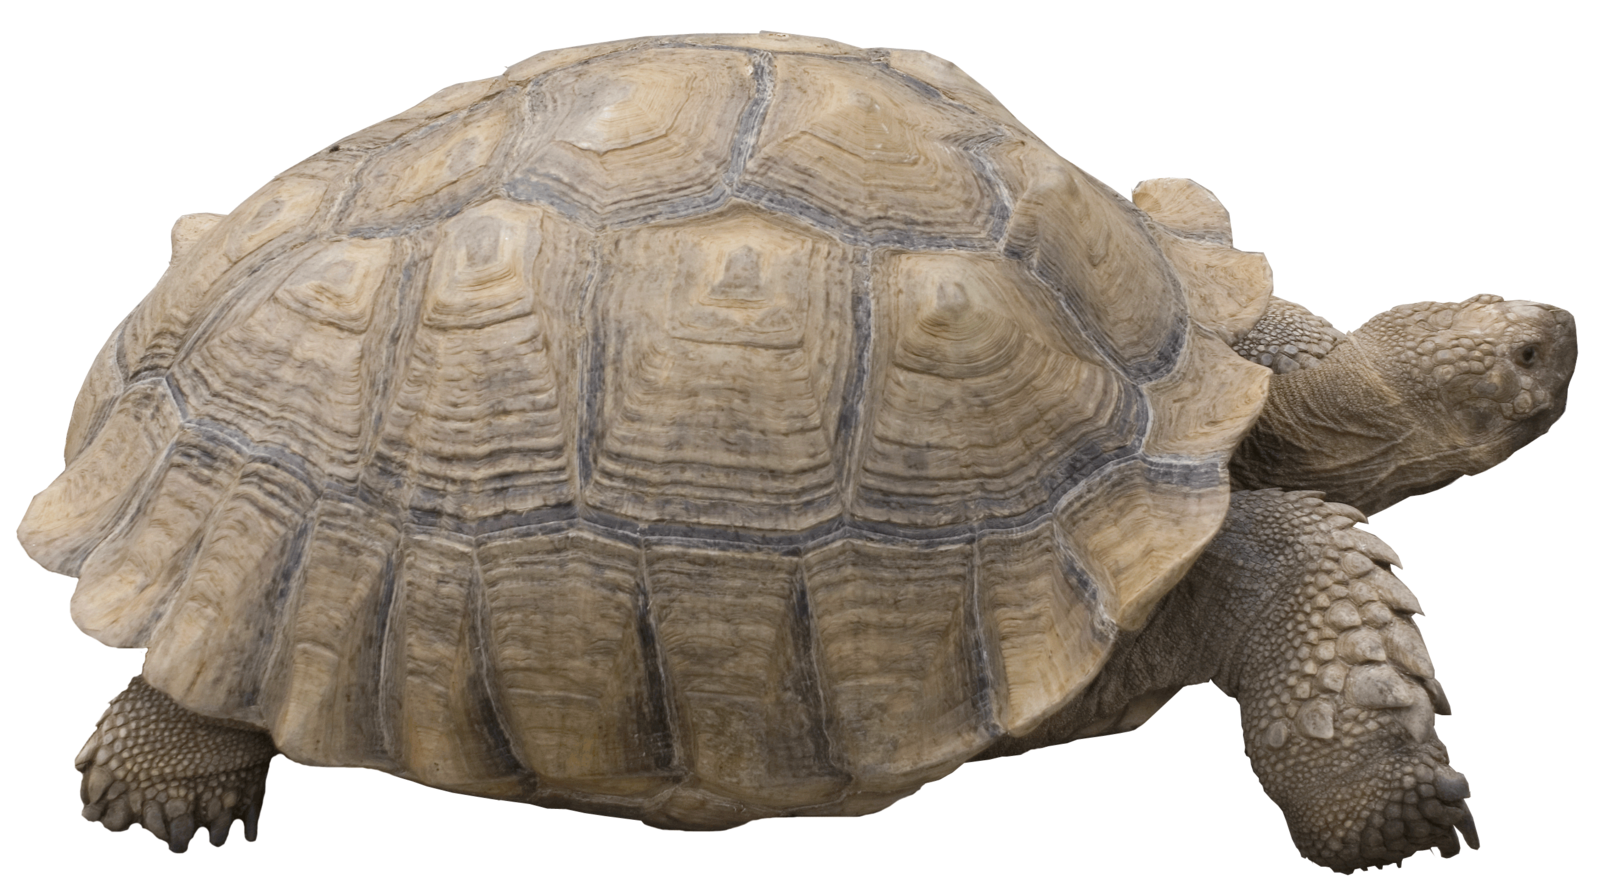 Desert clipart tortoise. Png by evelivesey deviantart